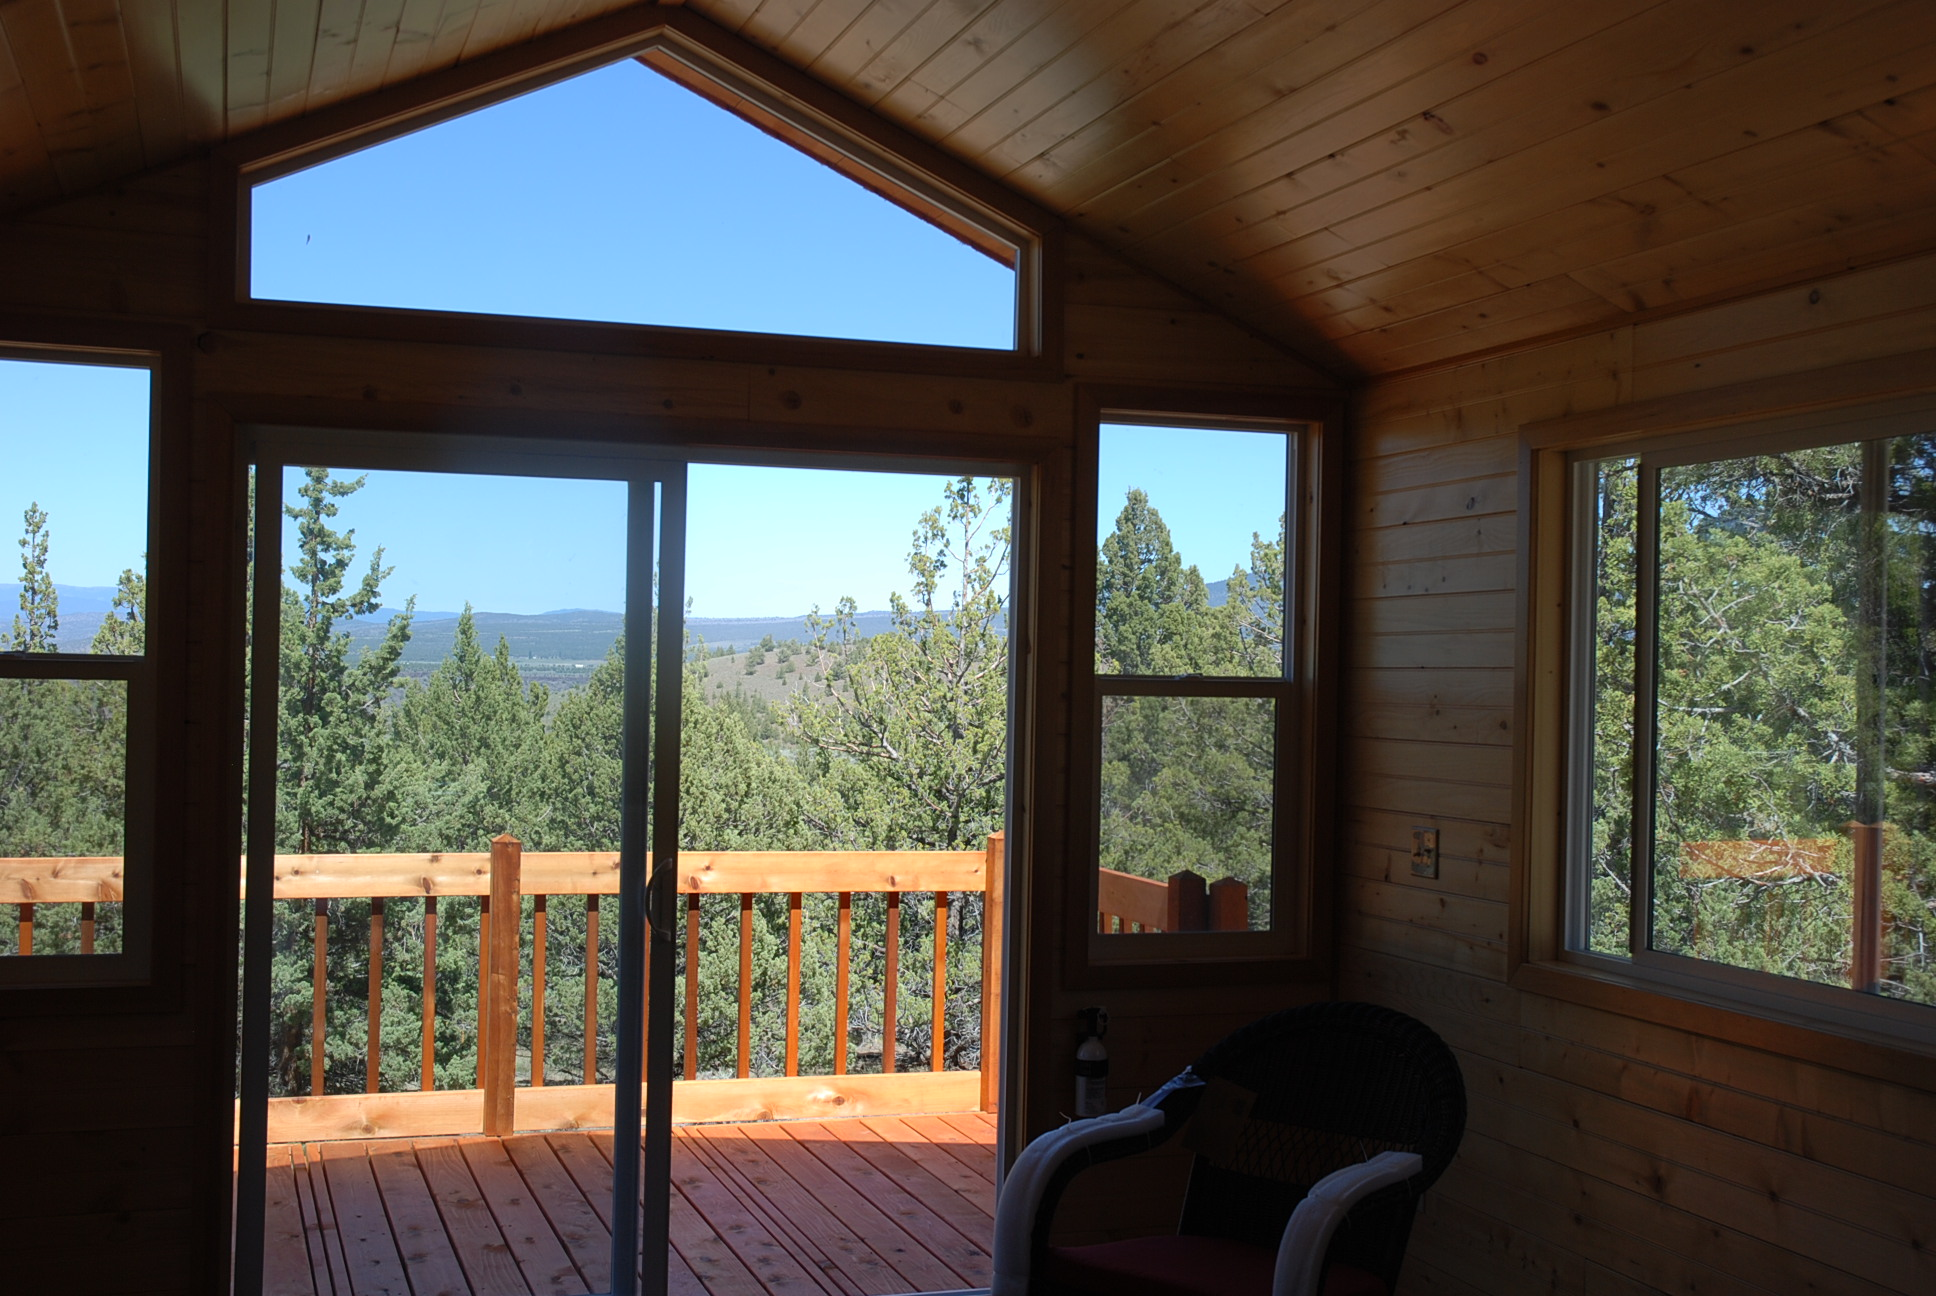 cabin for sale at Oregon ranch property interior